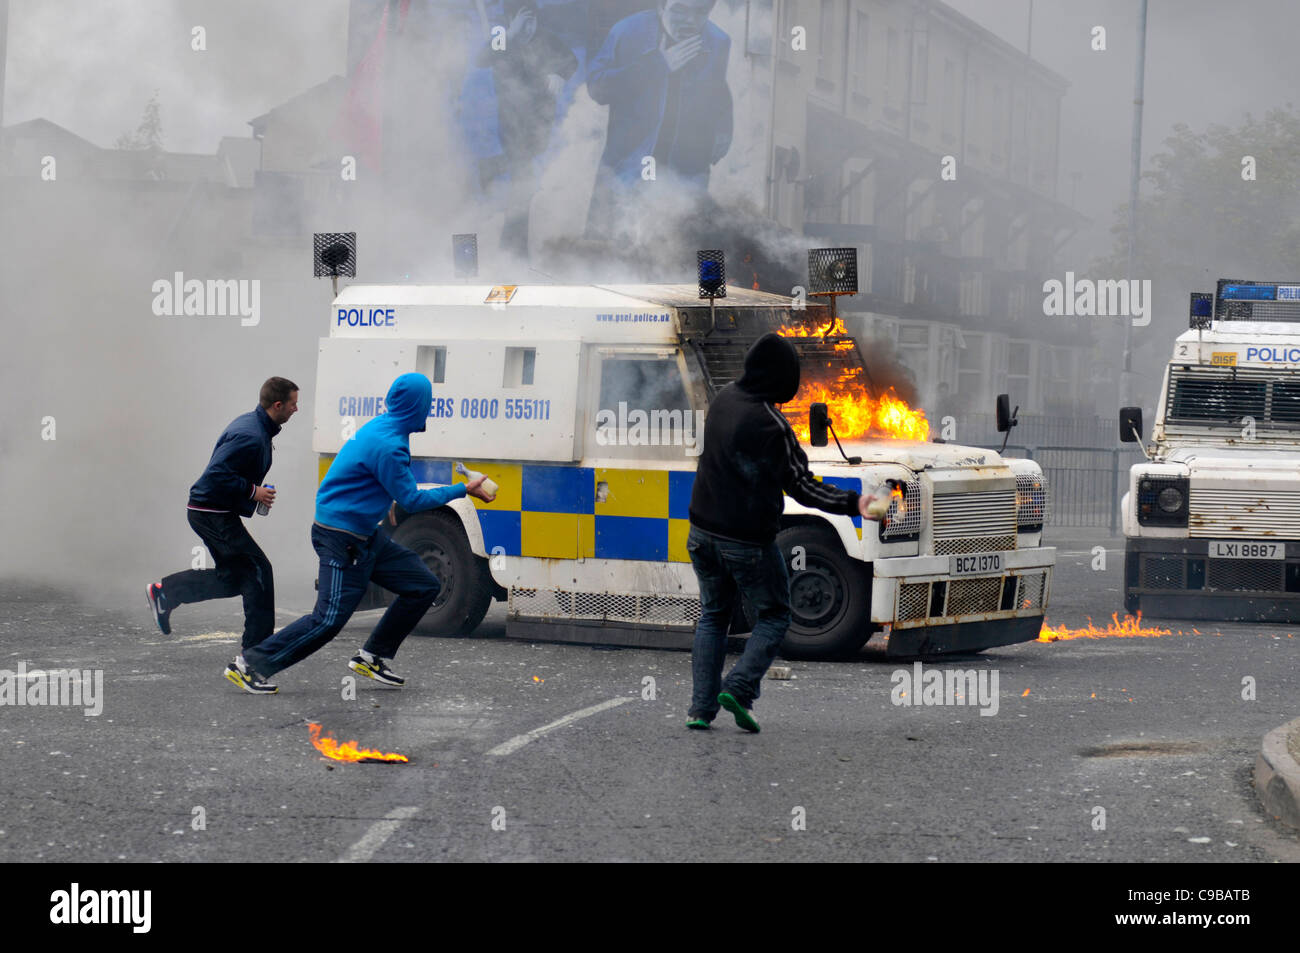 Masked nationalist youths throw petrol bombs at PSNI vehicles during riots in Bogide, Londonderry. - Stock Image